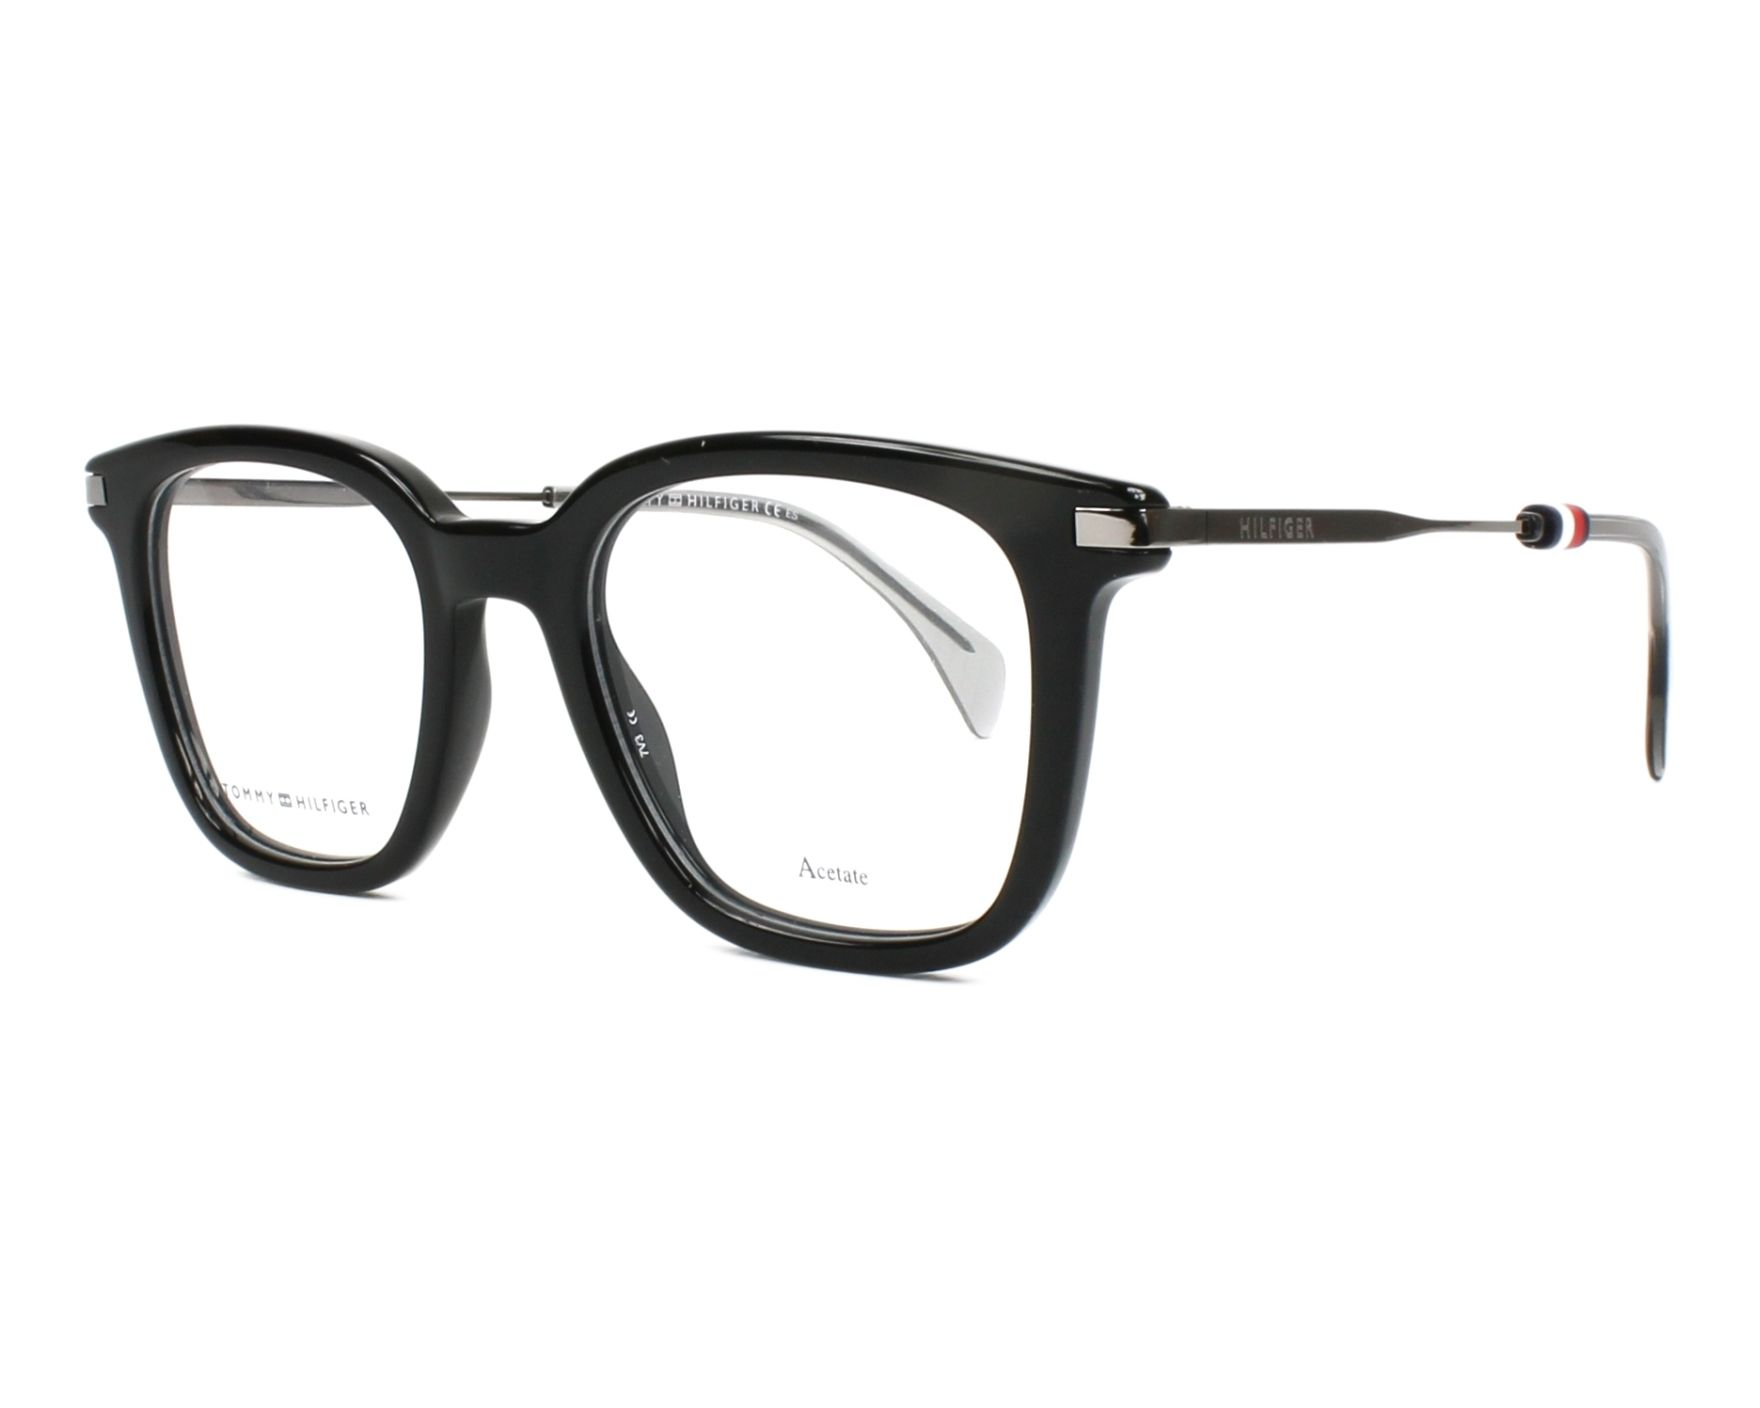 eyeglasses Tommy Hilfiger TH-1516 807 48-20 Black Silver profile view